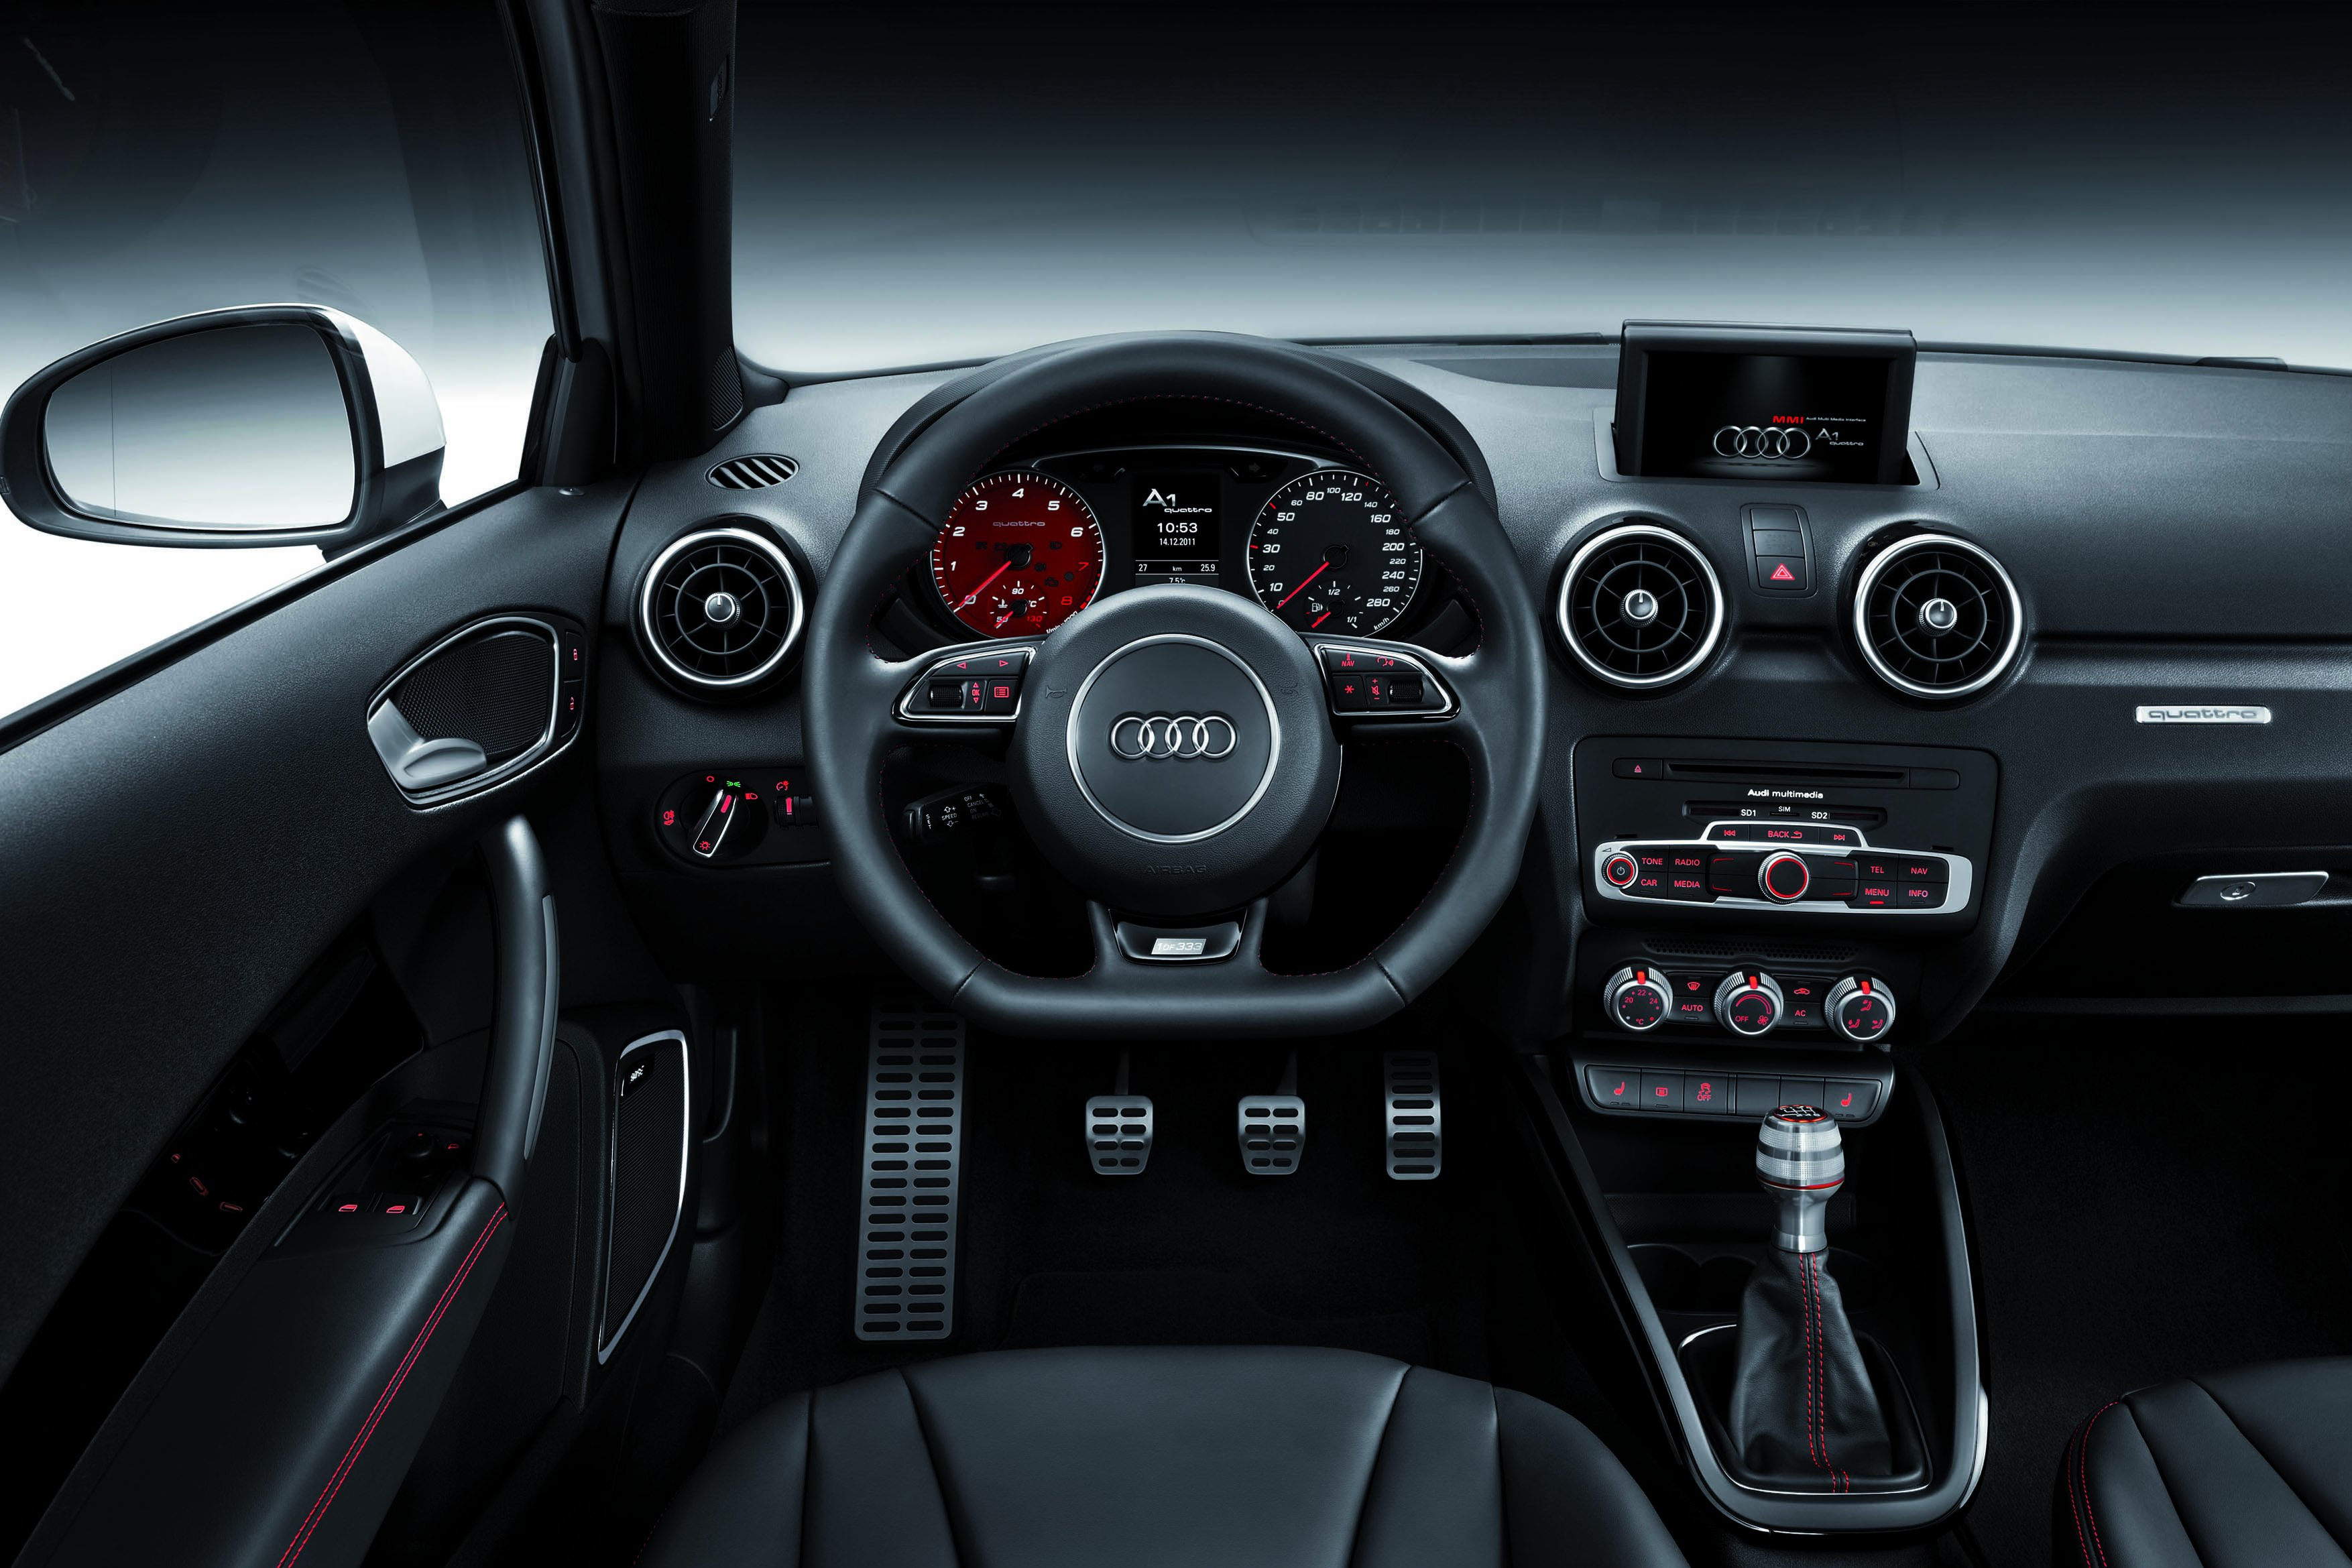 Audi Q >> Audi A1 quattro: 256 hp and 350 Nm, only 333 units Paul Tan - Image 81103